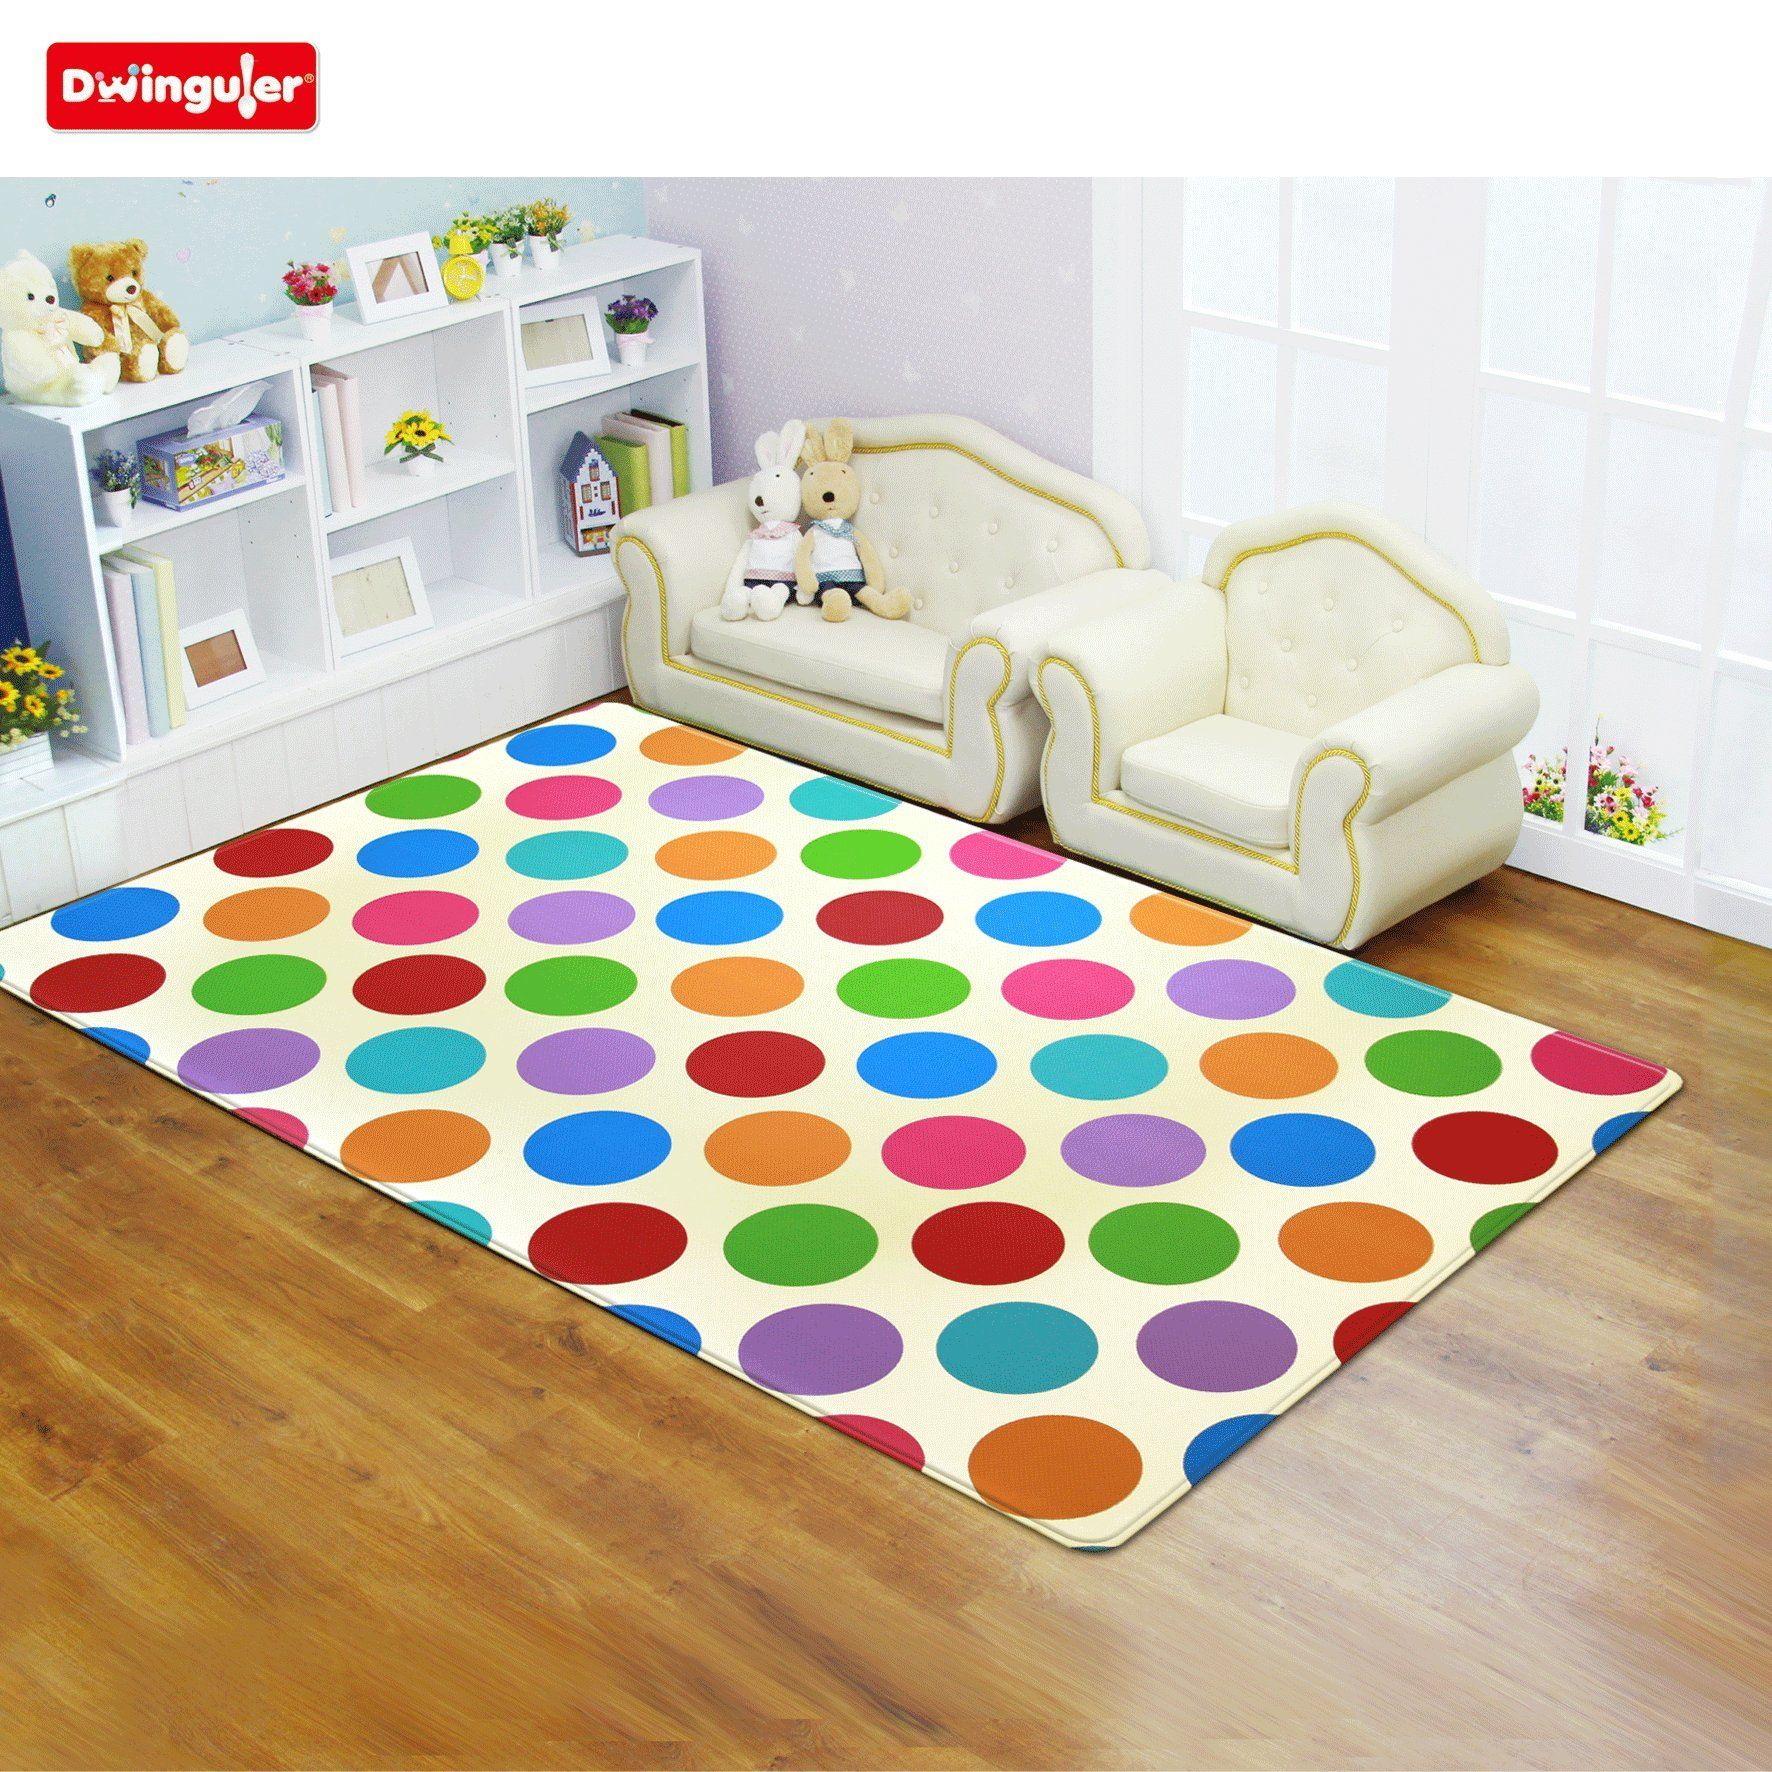 Amazon Dwinguler Eco friendly Kids Play Mat Polka Dots